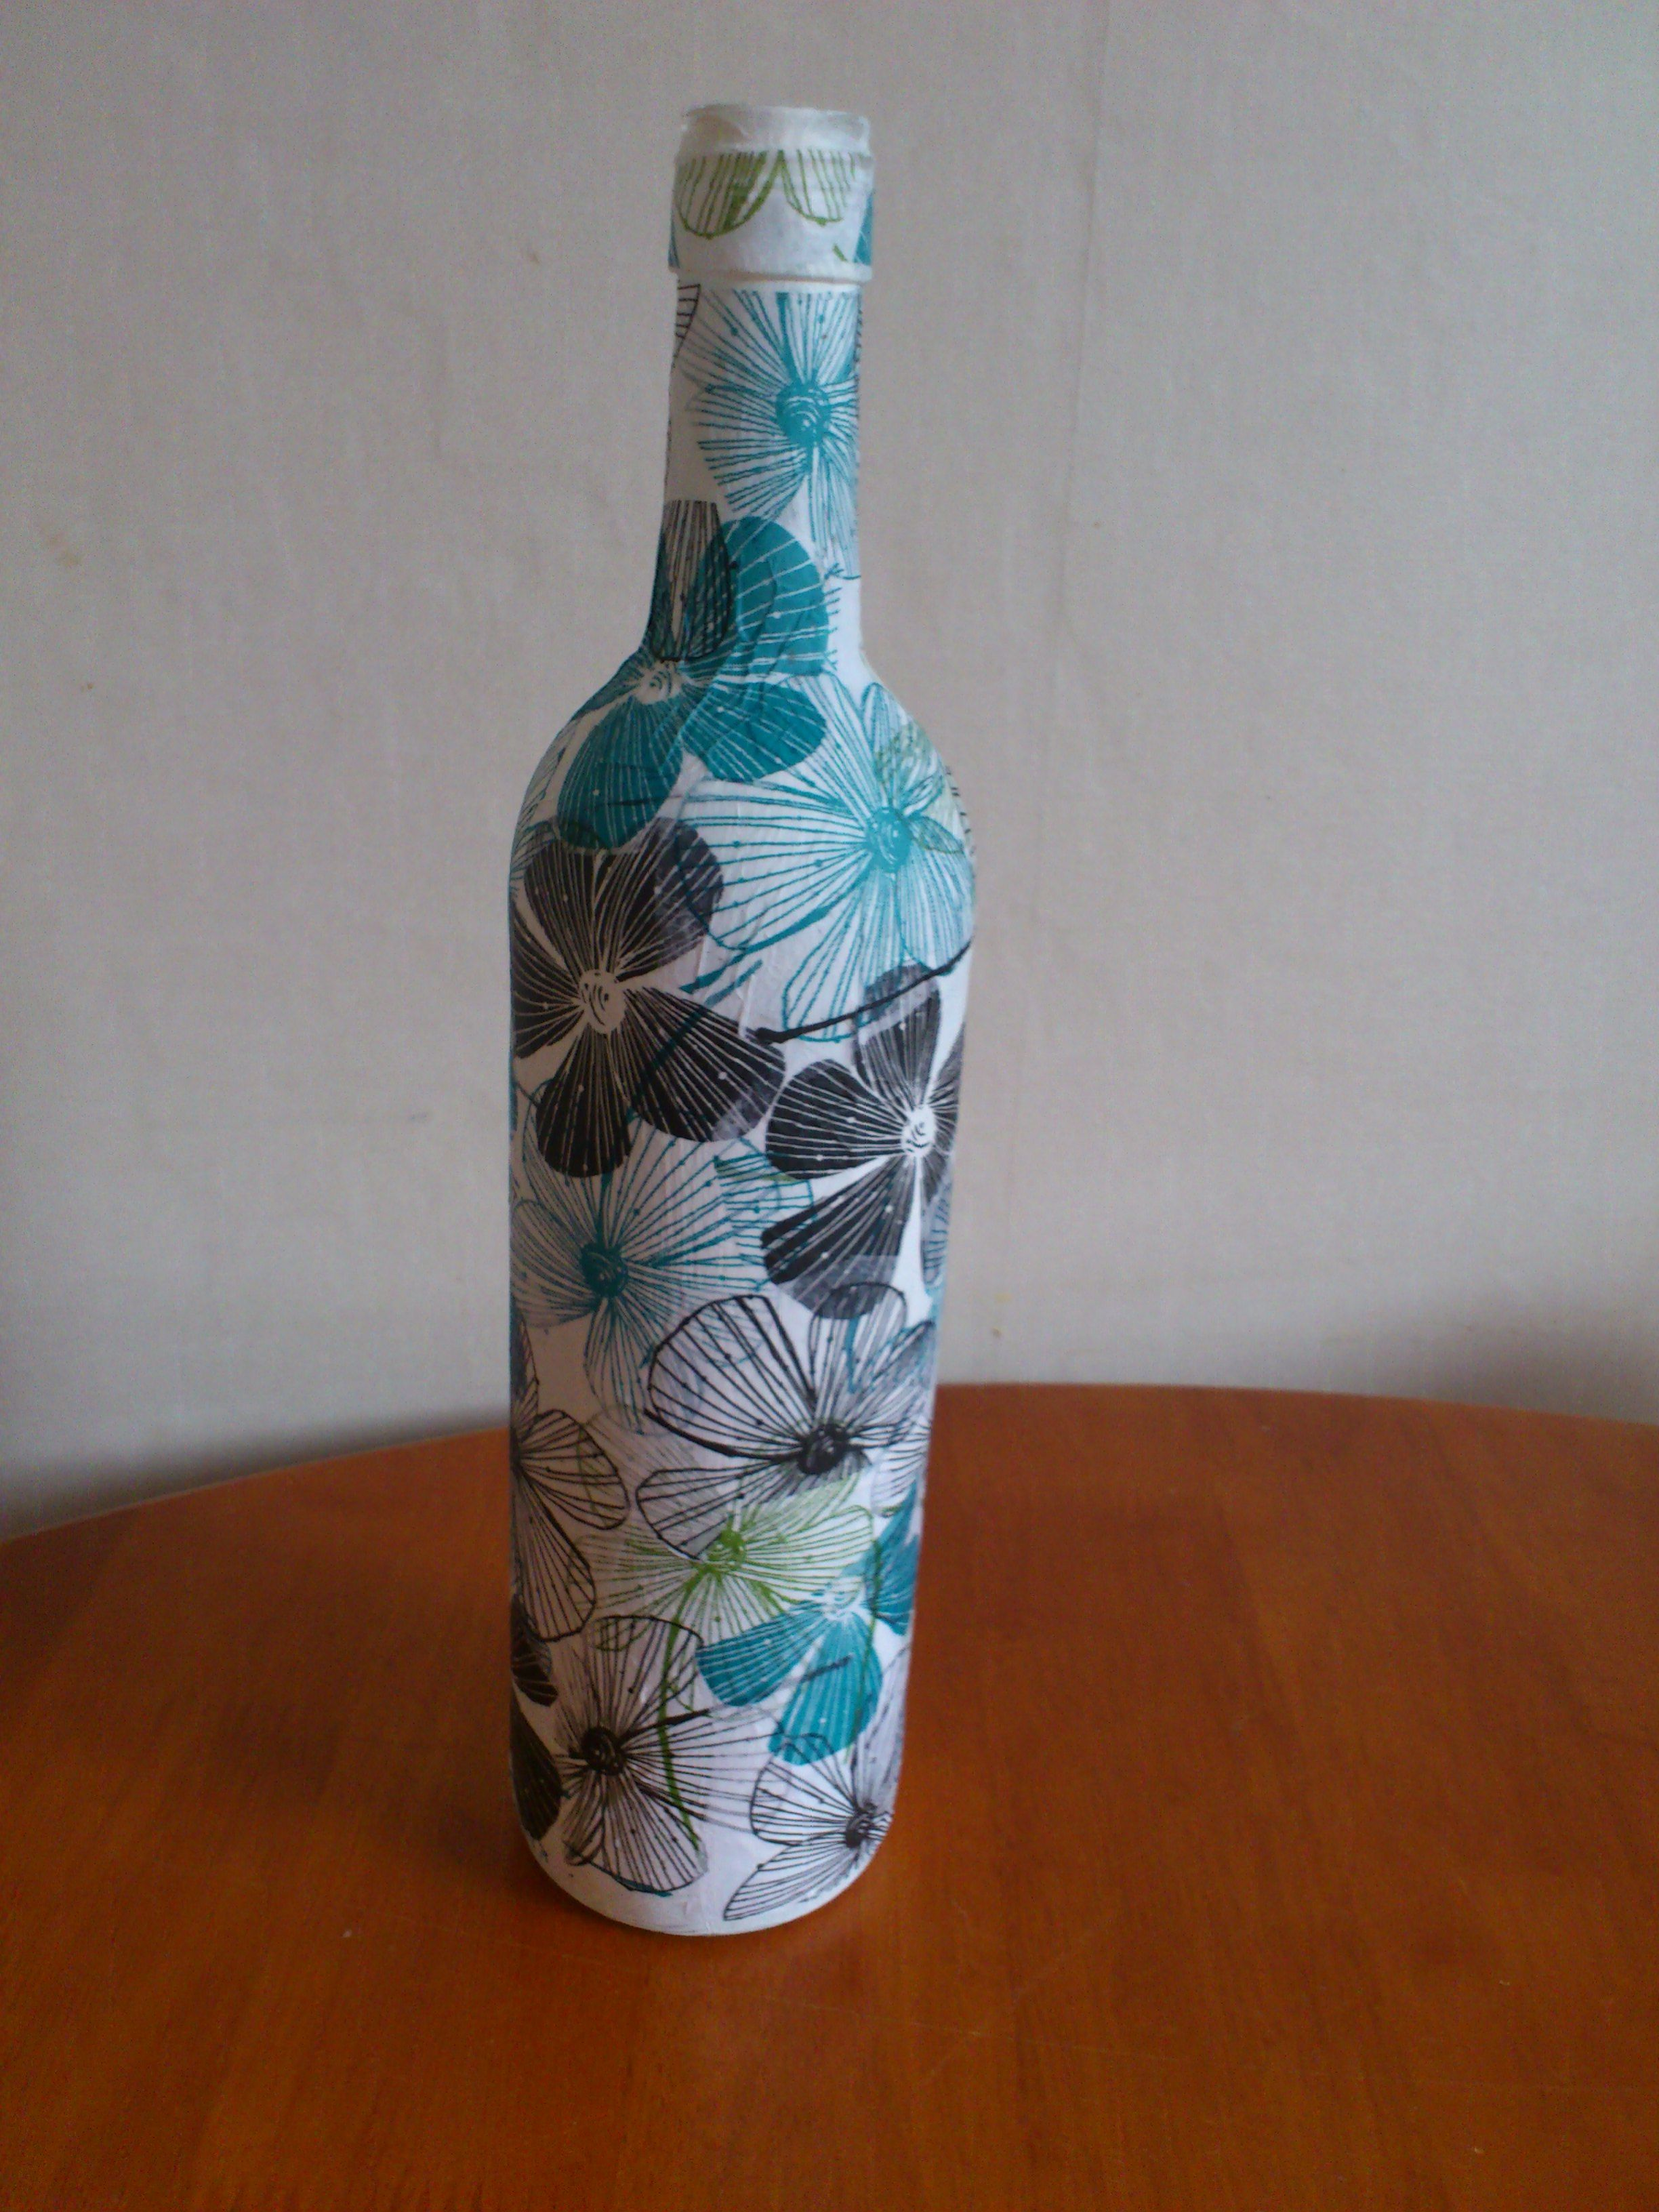 Diy wine bottle using pva glue and tissue paper artsy for Diy crafts with glass jars and bottles